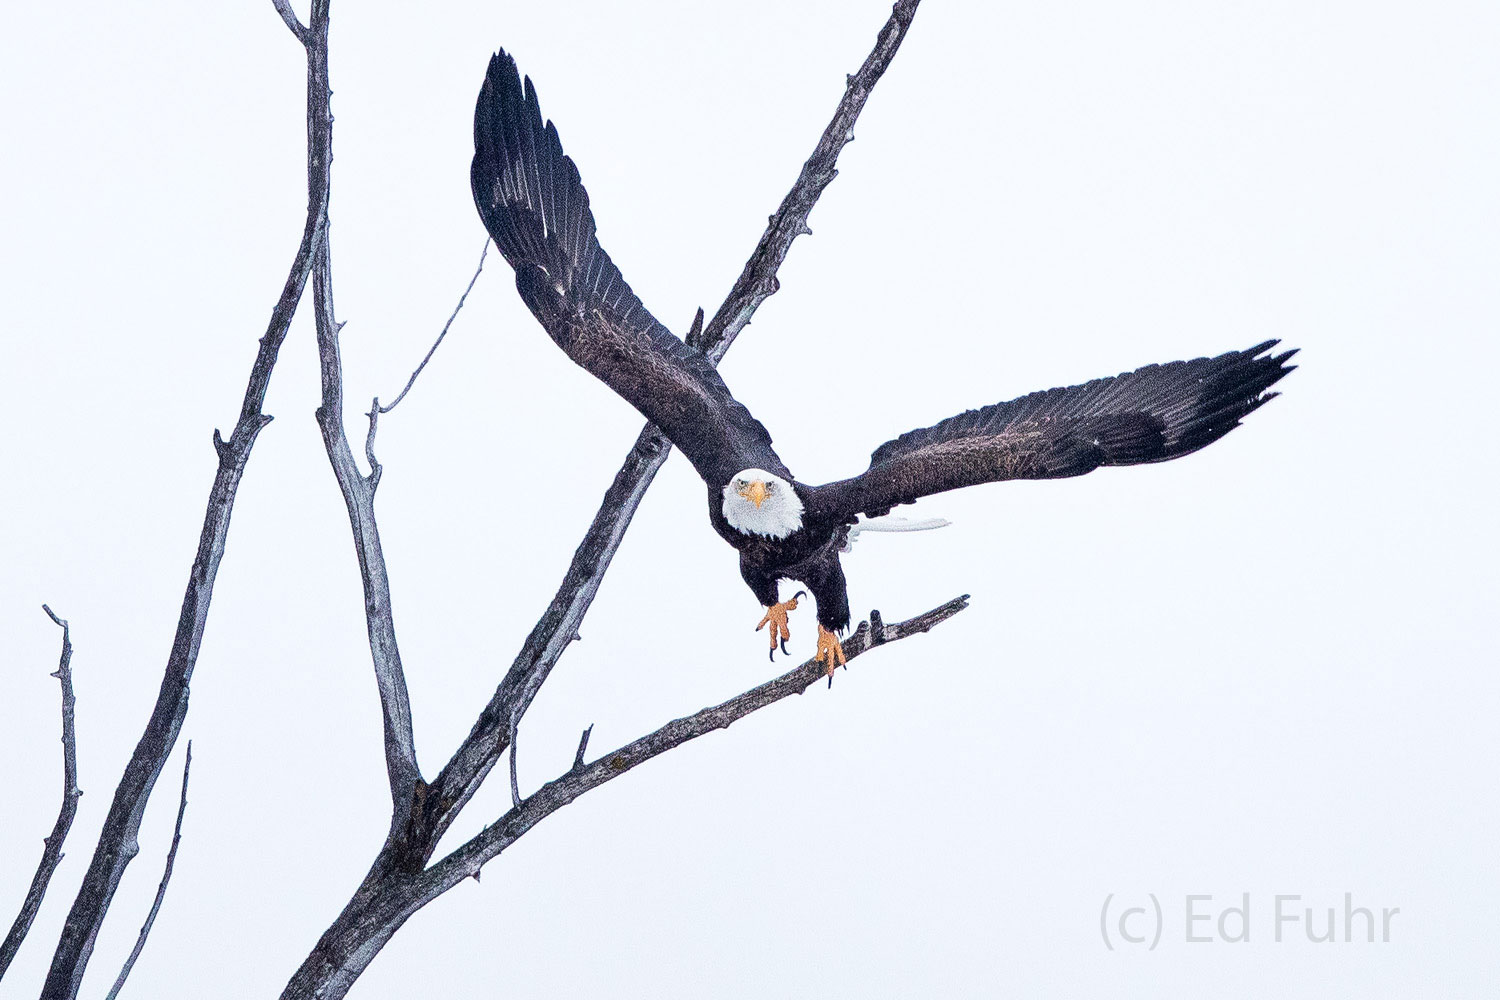 A bald eagle springs to flight from this dead cottonwood from which he had been perched surveying the landscape for food.